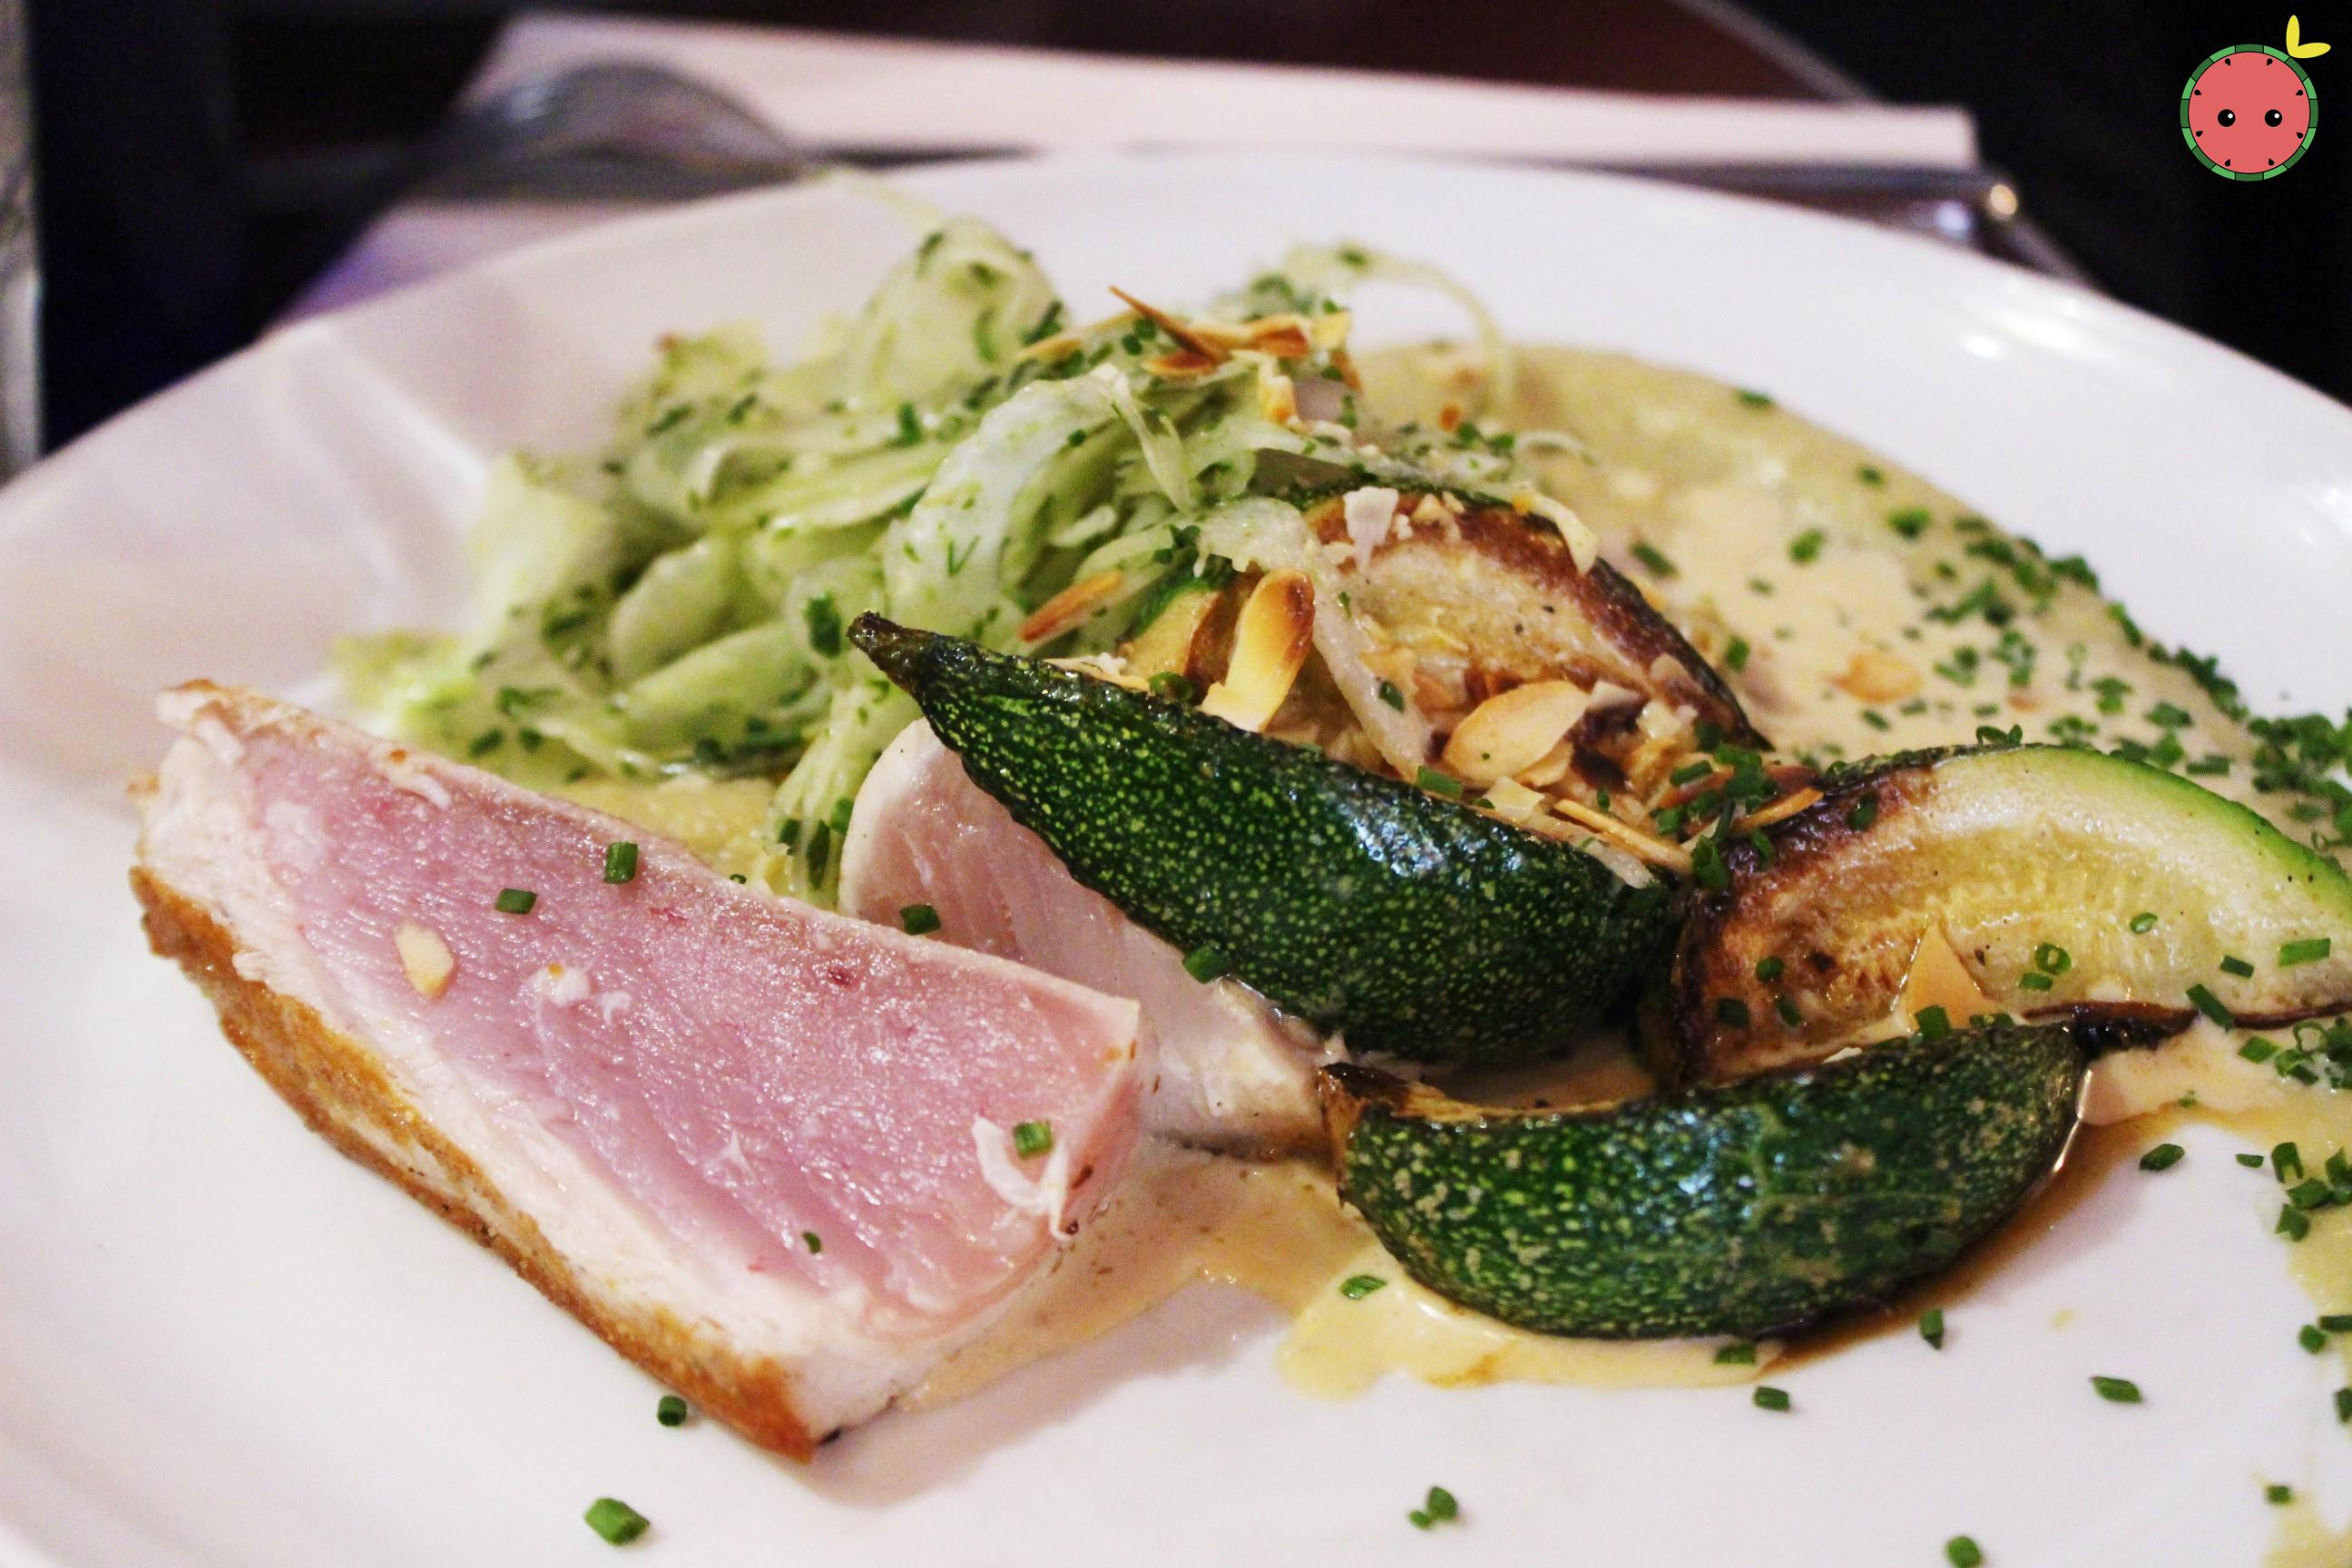 White Tuna, Puree Fennel Confit, Grilled Zucchini, Crispy Salad with Lemon & Roasted Almonds